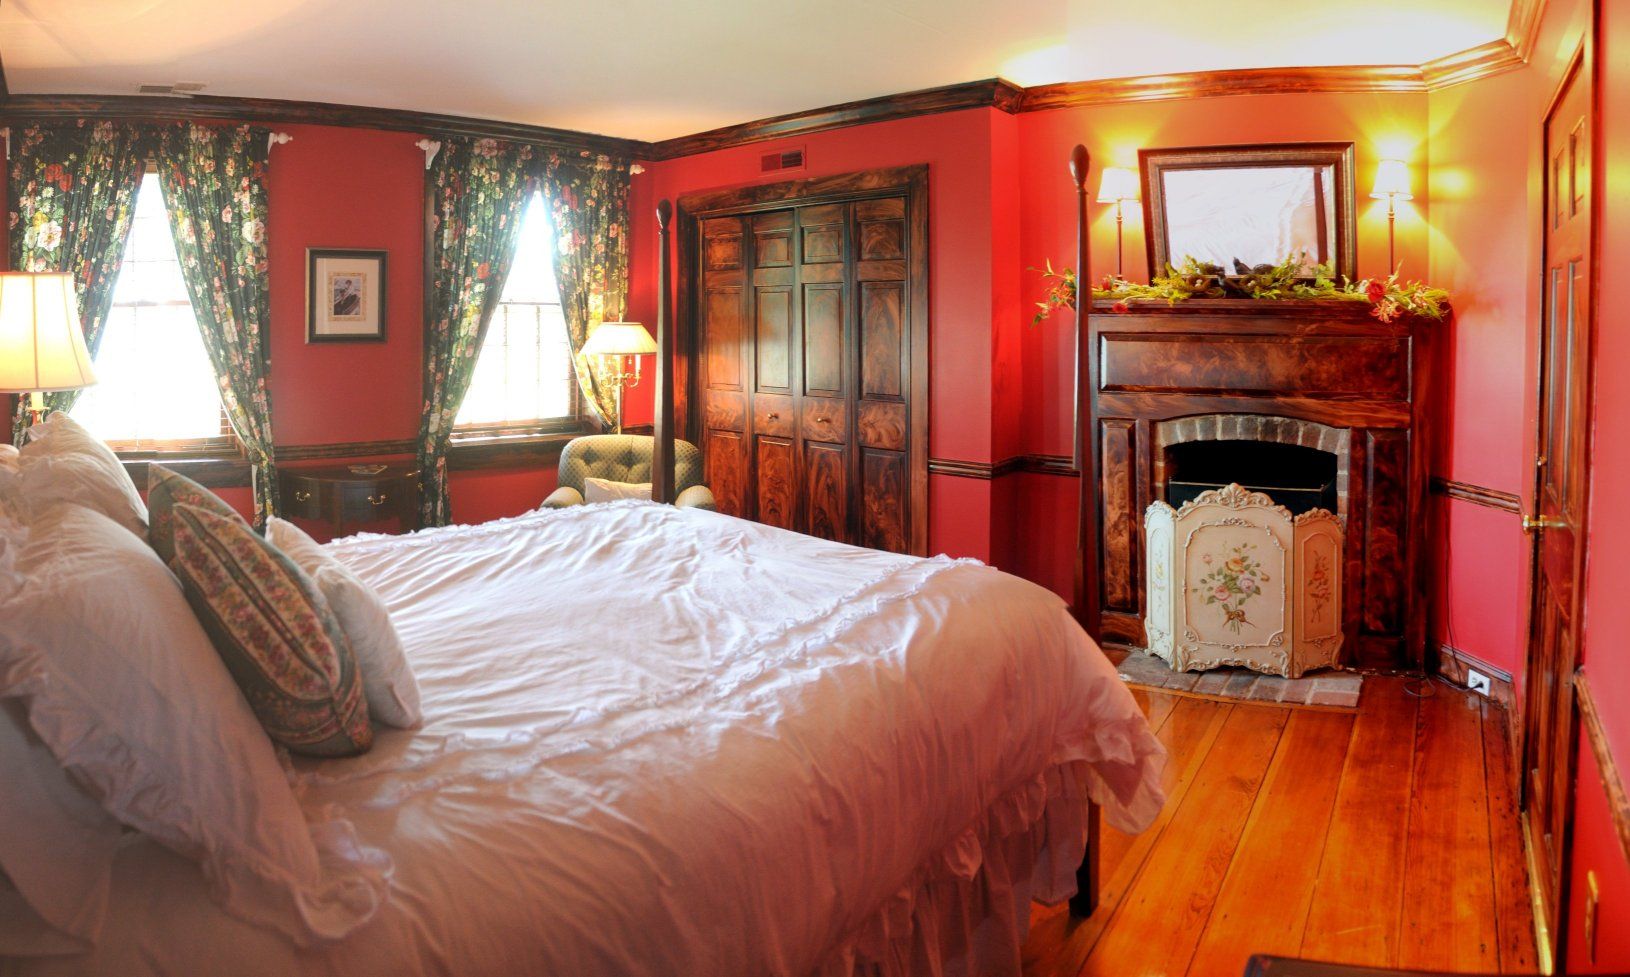 bedroom at combsberry inn with red walls